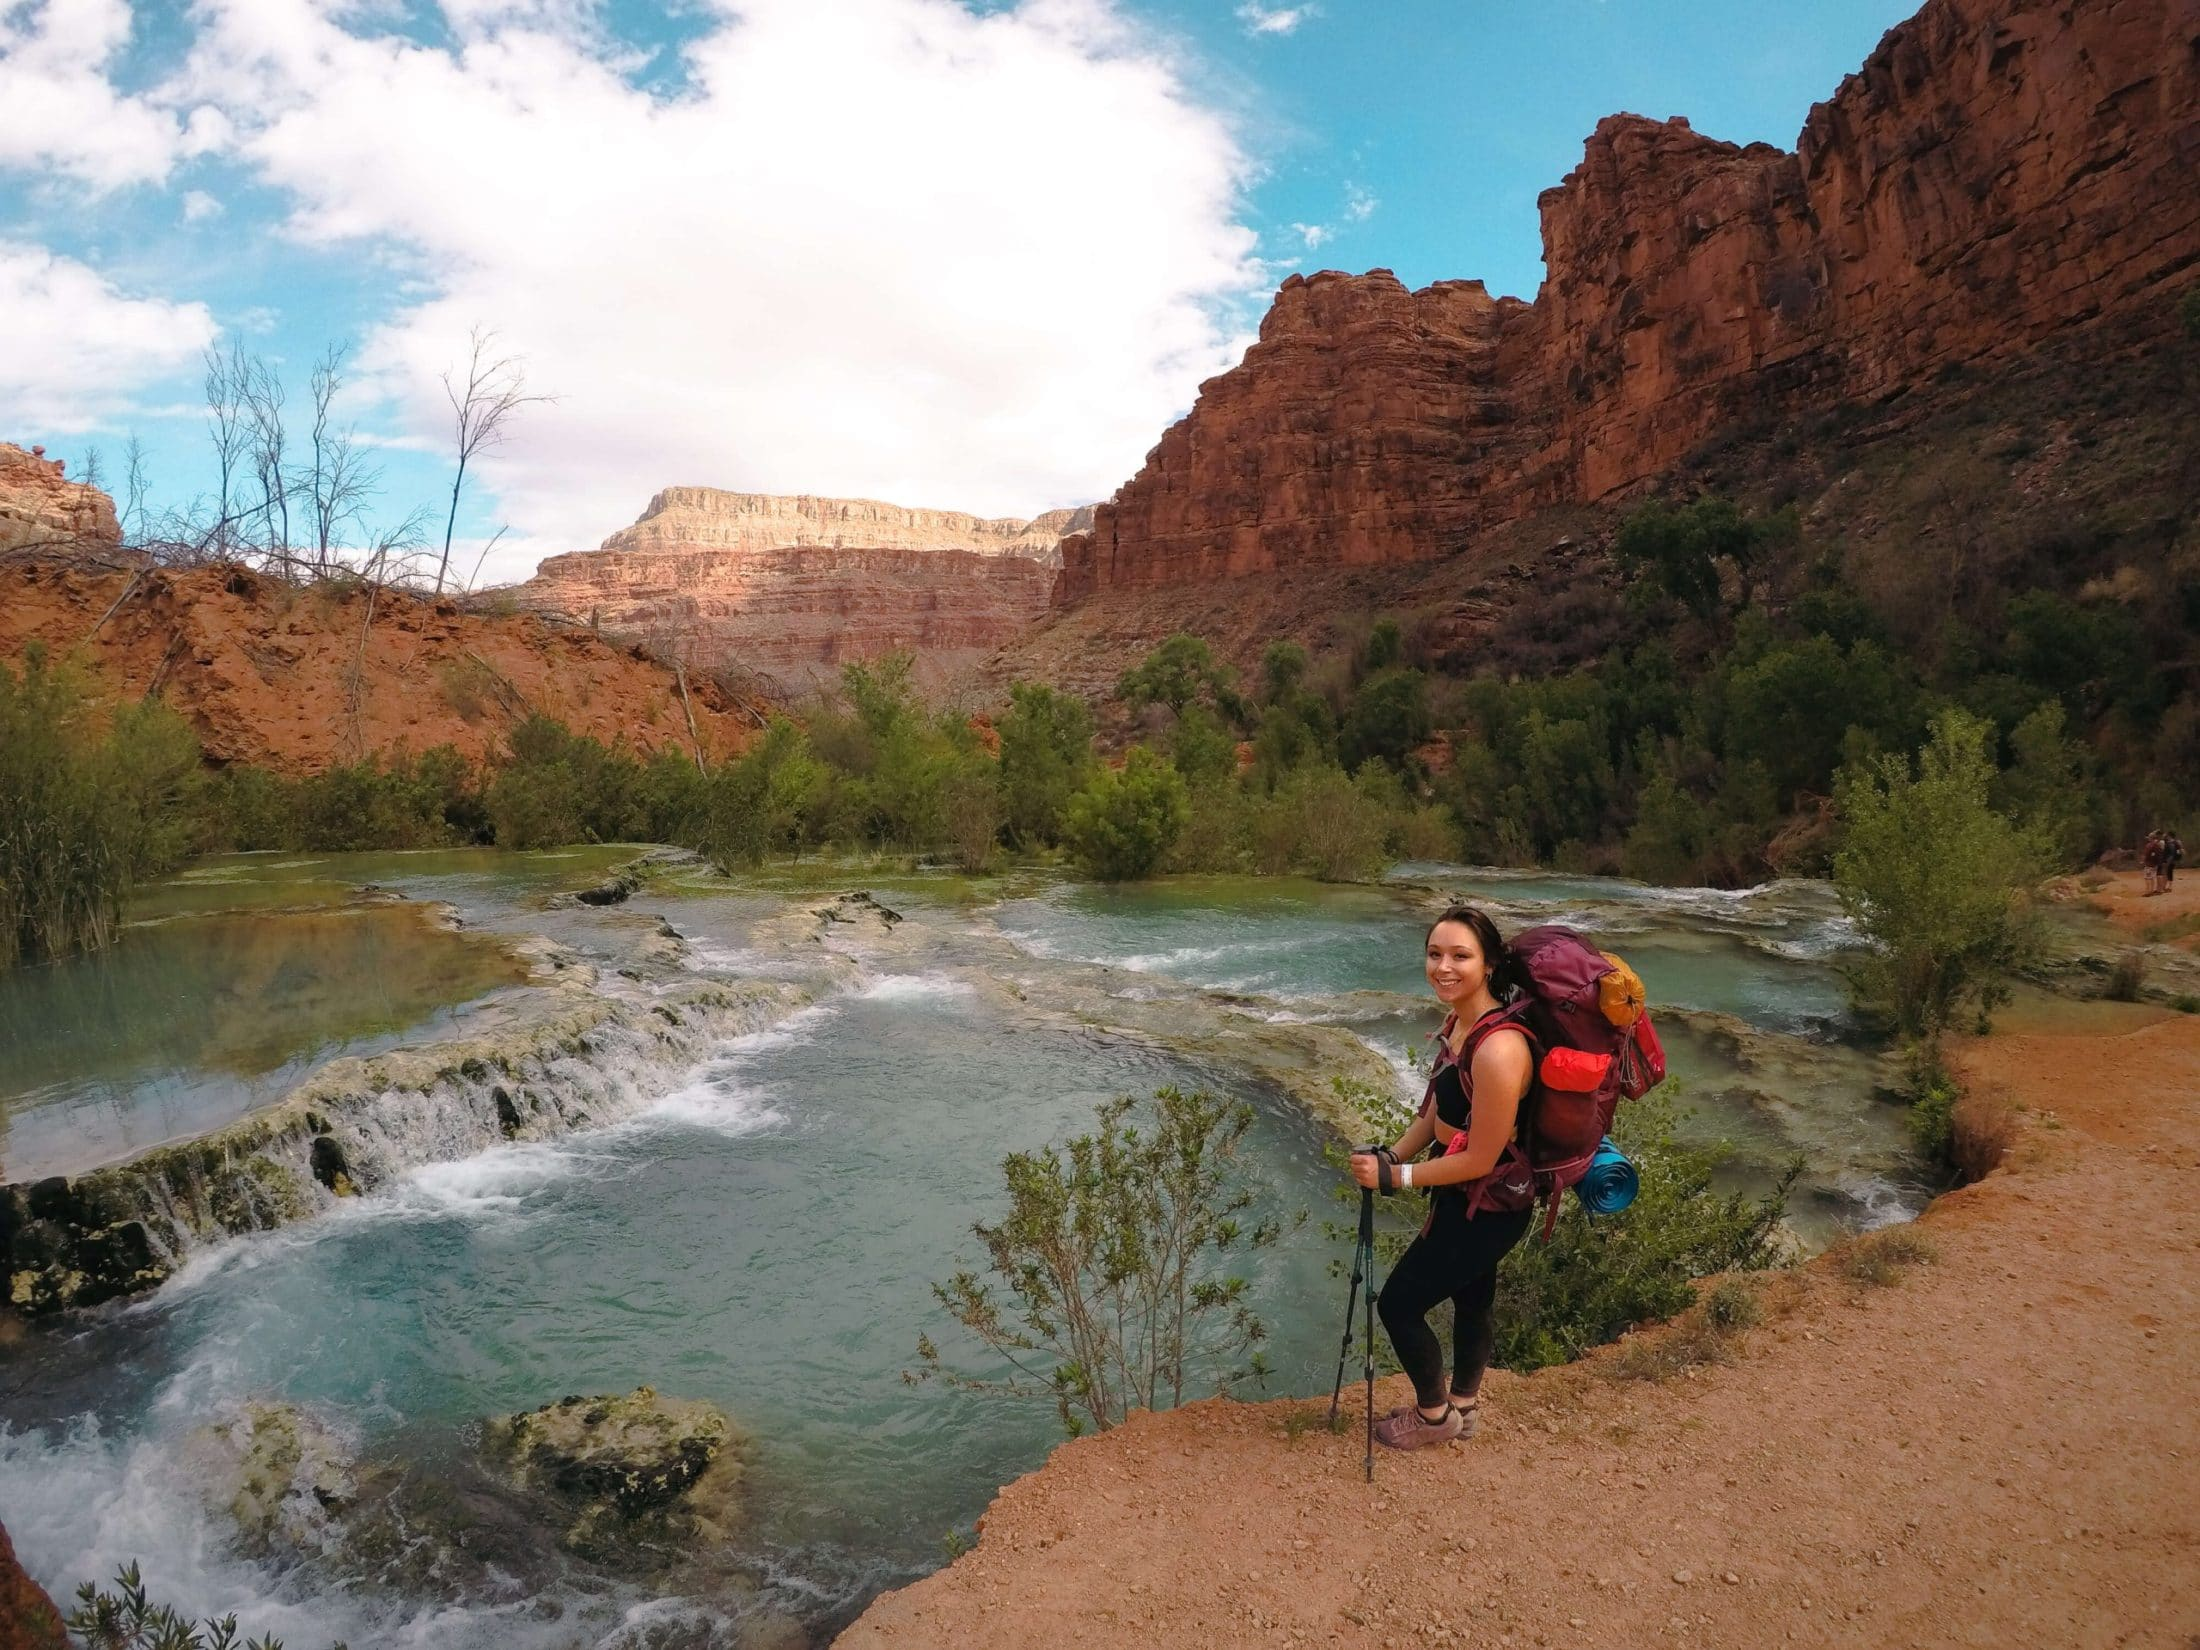 The trail to the Havasupai campground